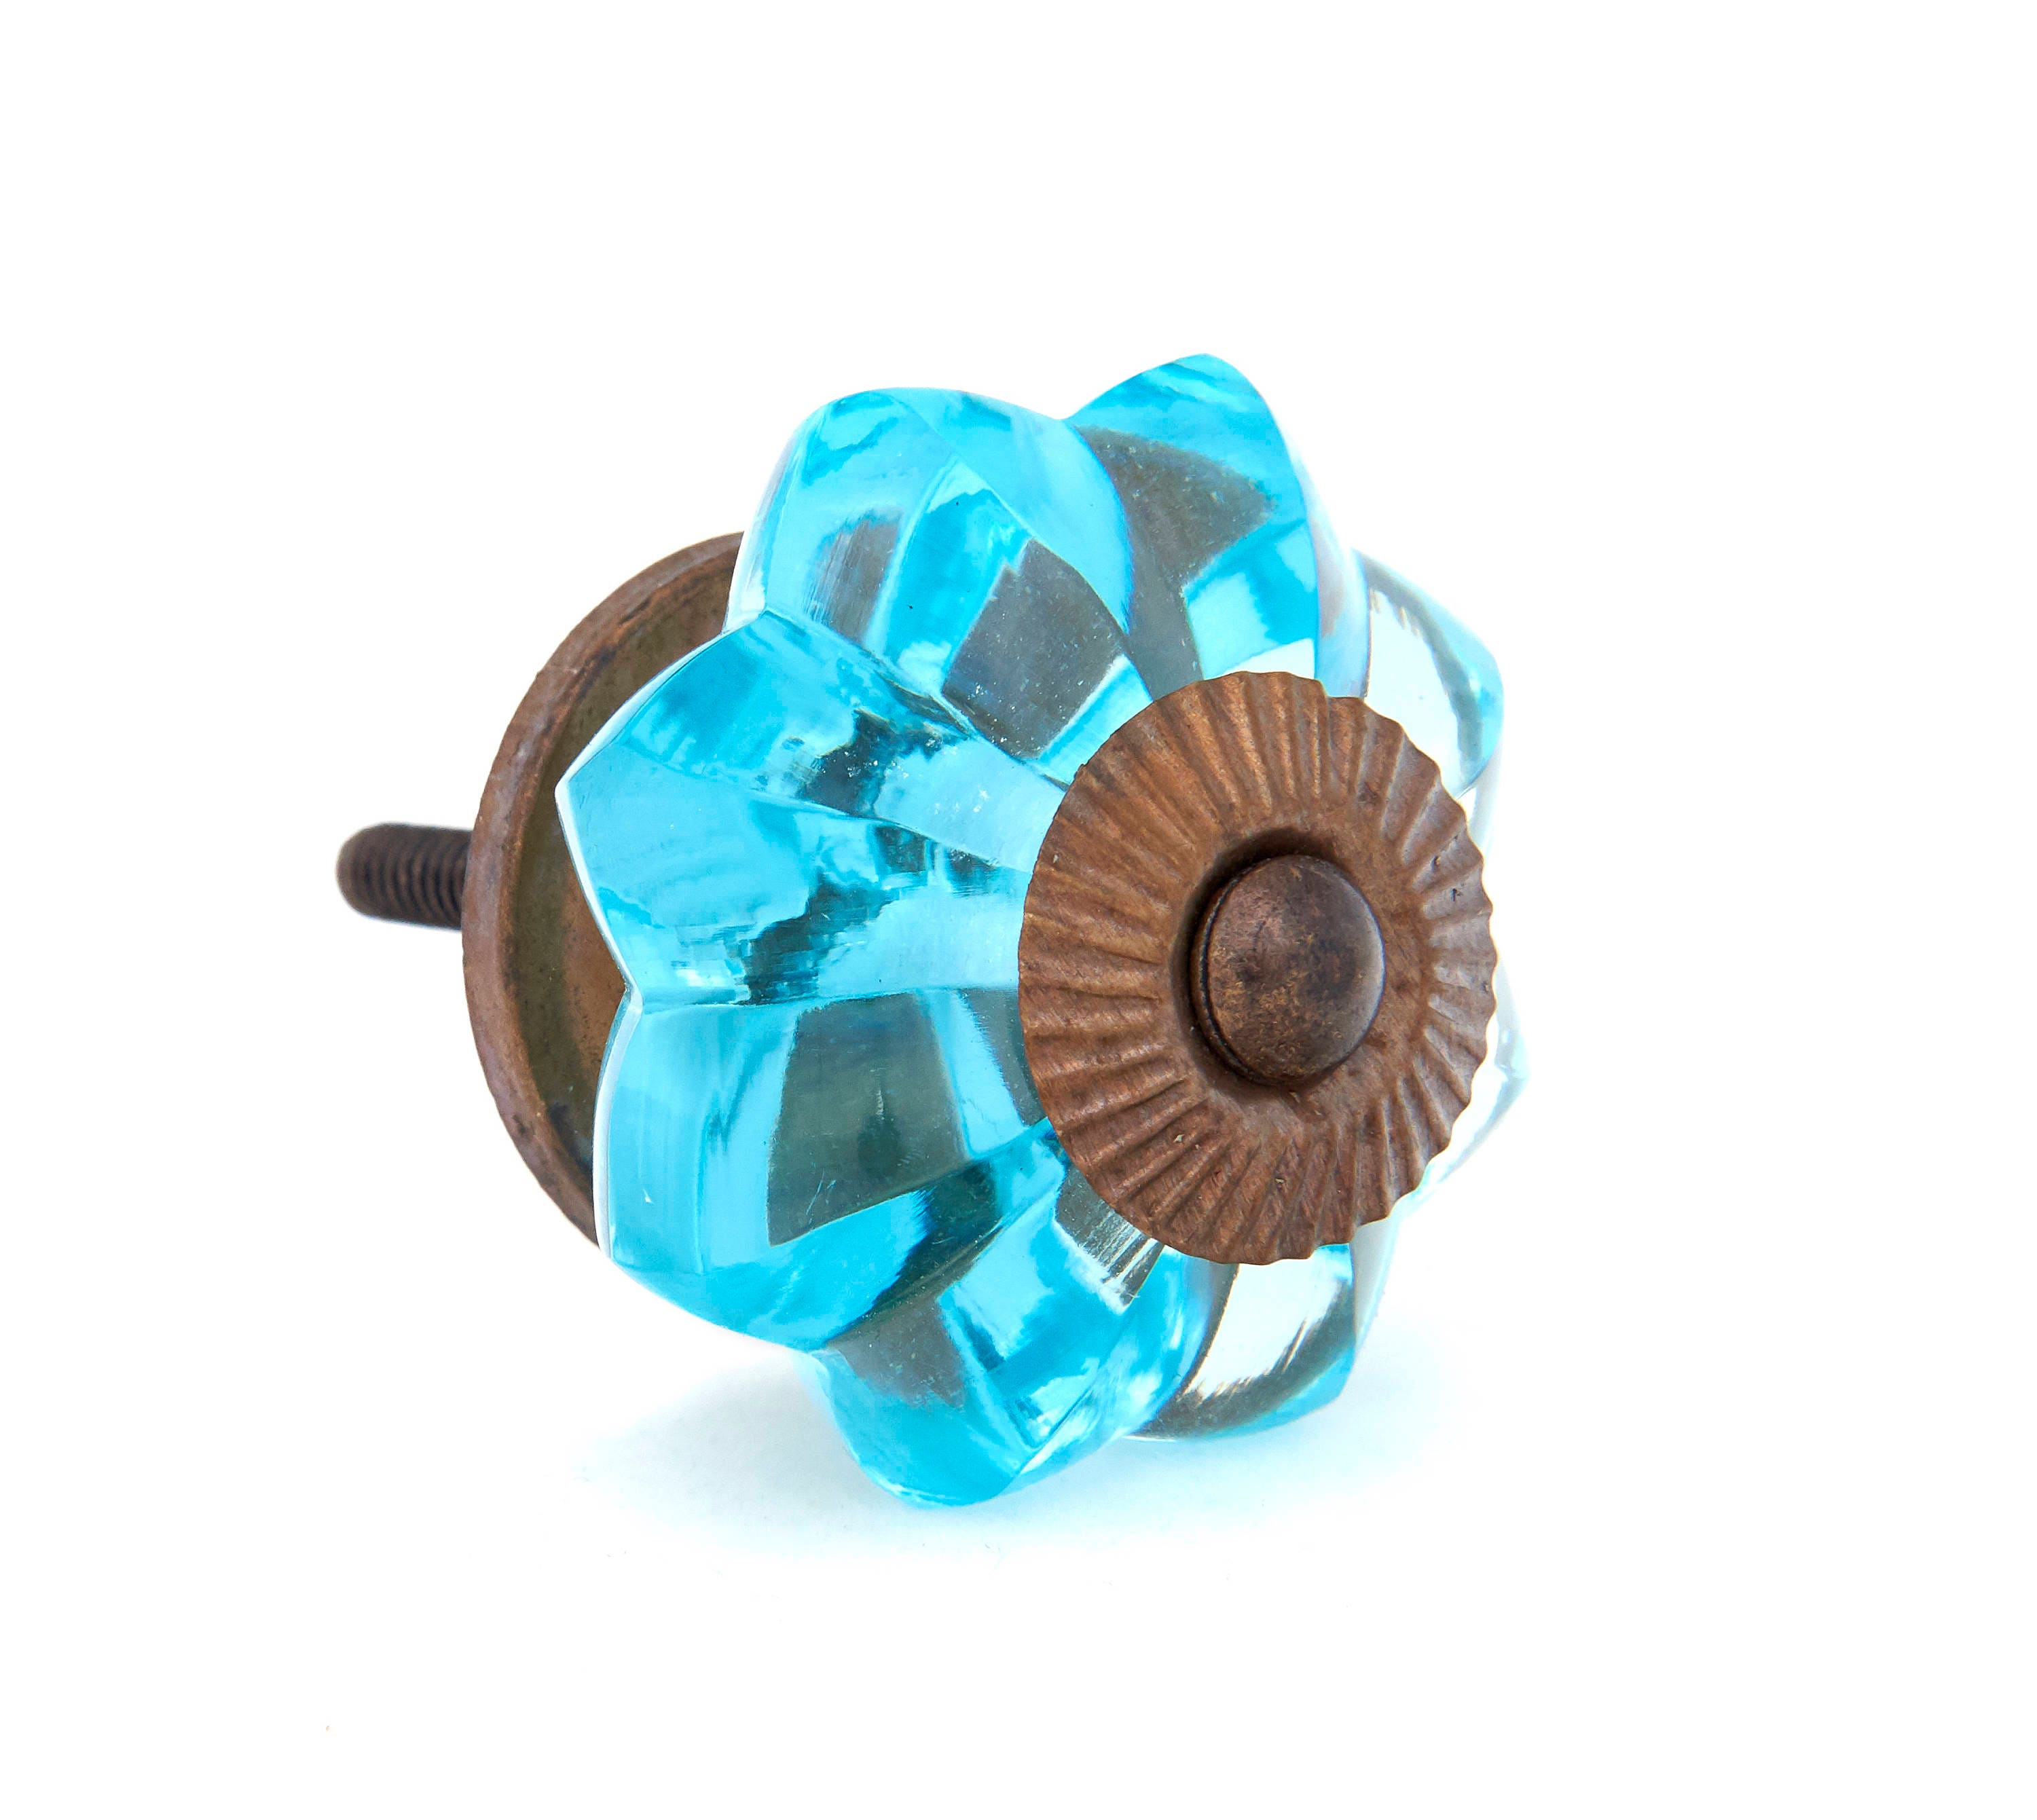 Turquoise Glass Kitchen Cabinet Pulls, Dresser Knobs with Antique ...